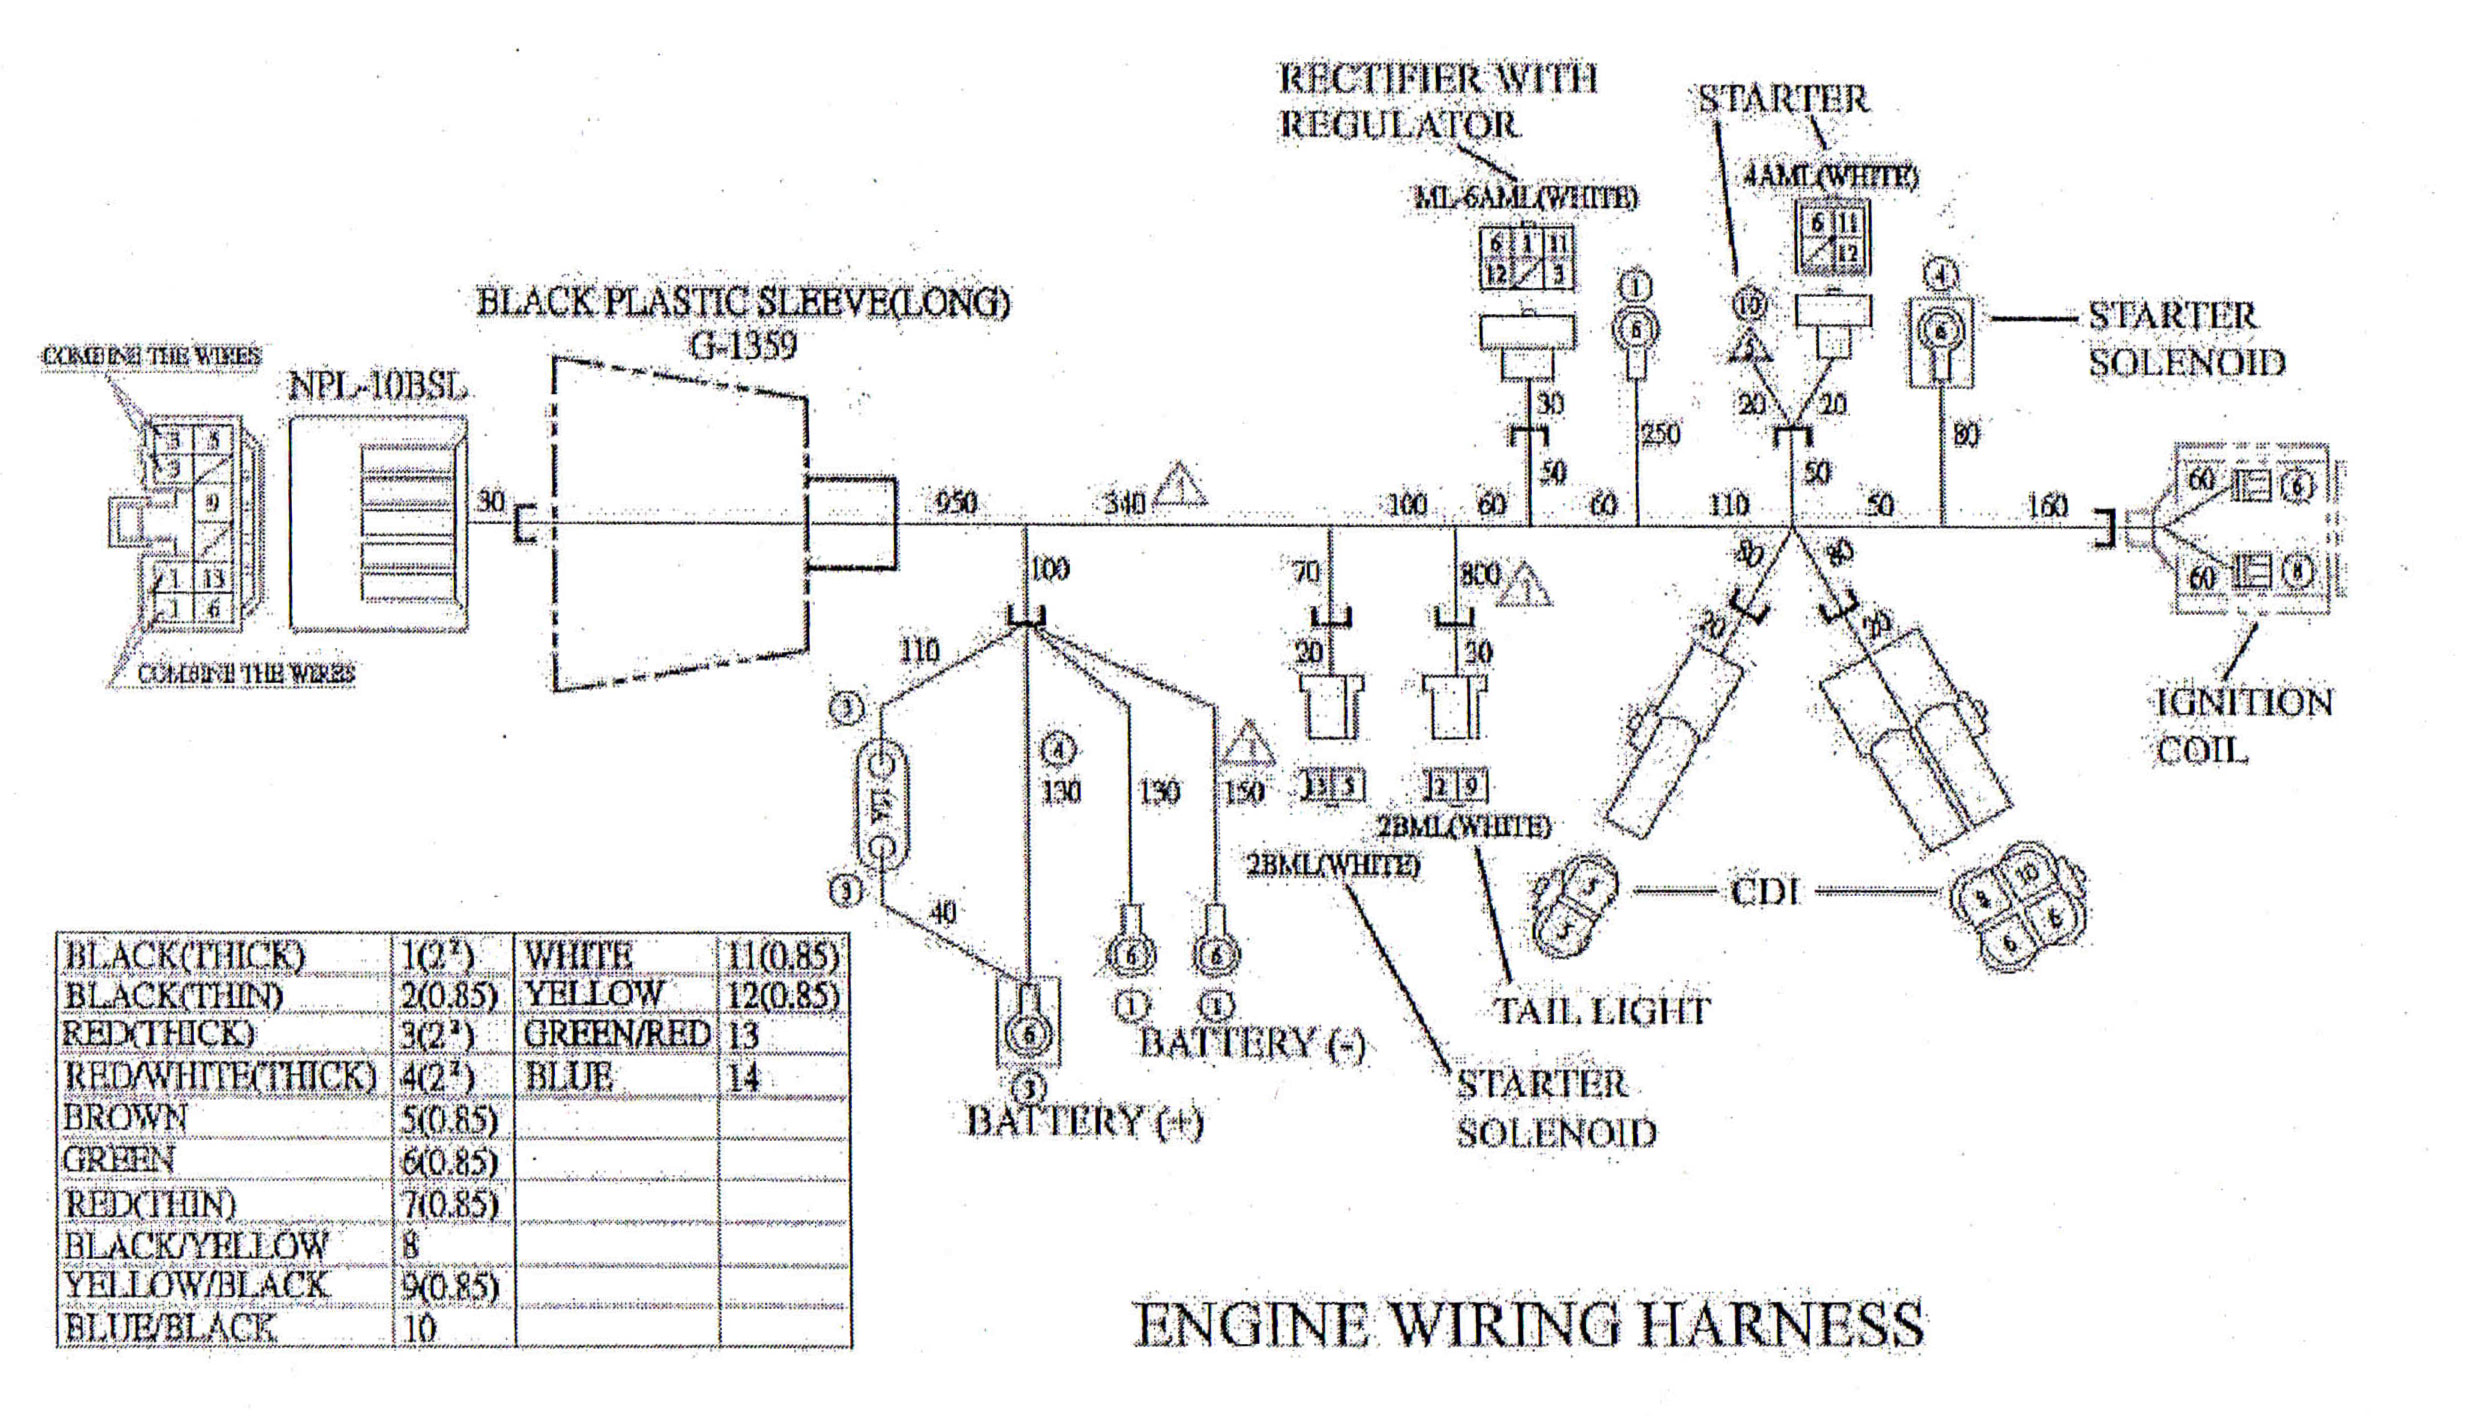 Sensational 150Cc Dune Buggy Wire Harness Basic Electronics Wiring Diagram Wiring Cloud Overrenstrafr09Org